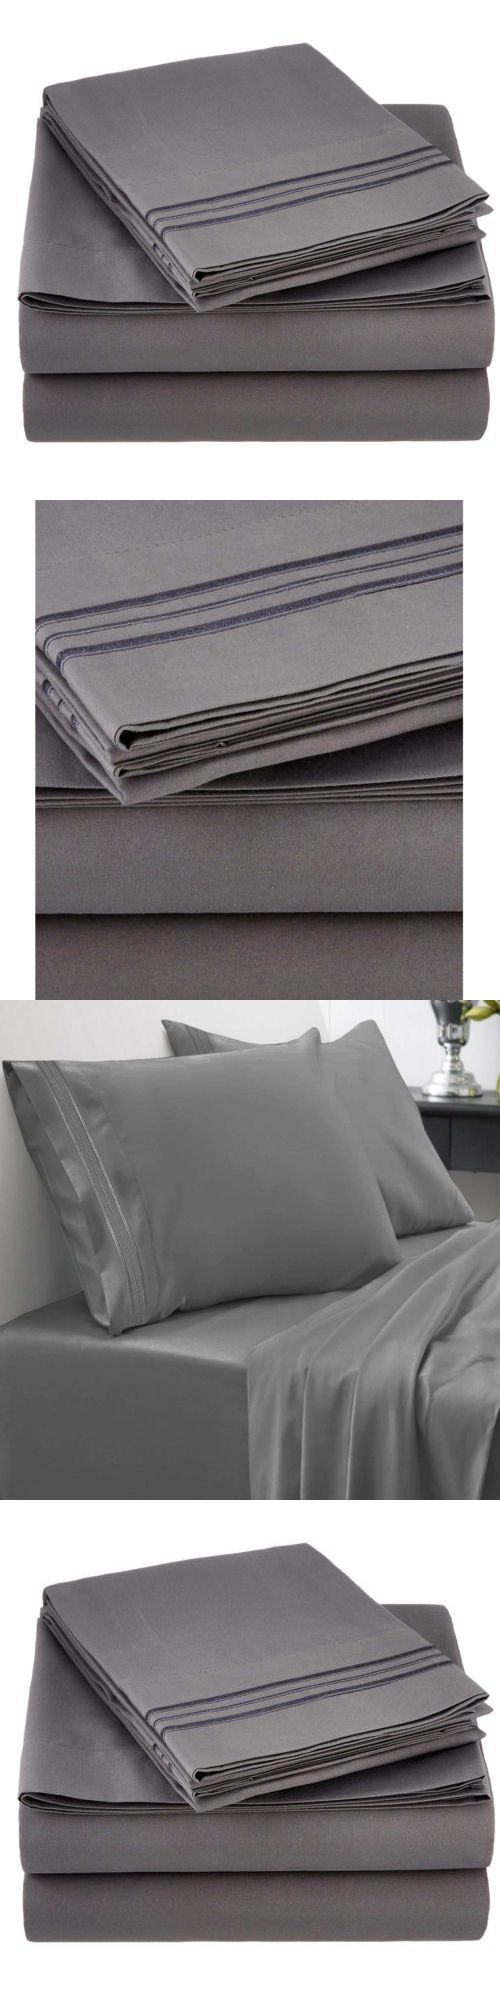 Sheets and Pillowcases 20460: King Size 4 Piece Deep Pocket Bed Sheet Set Gray 800 Thread Count Egyptian New -> BUY IT NOW ONLY: $37.53 on eBay!